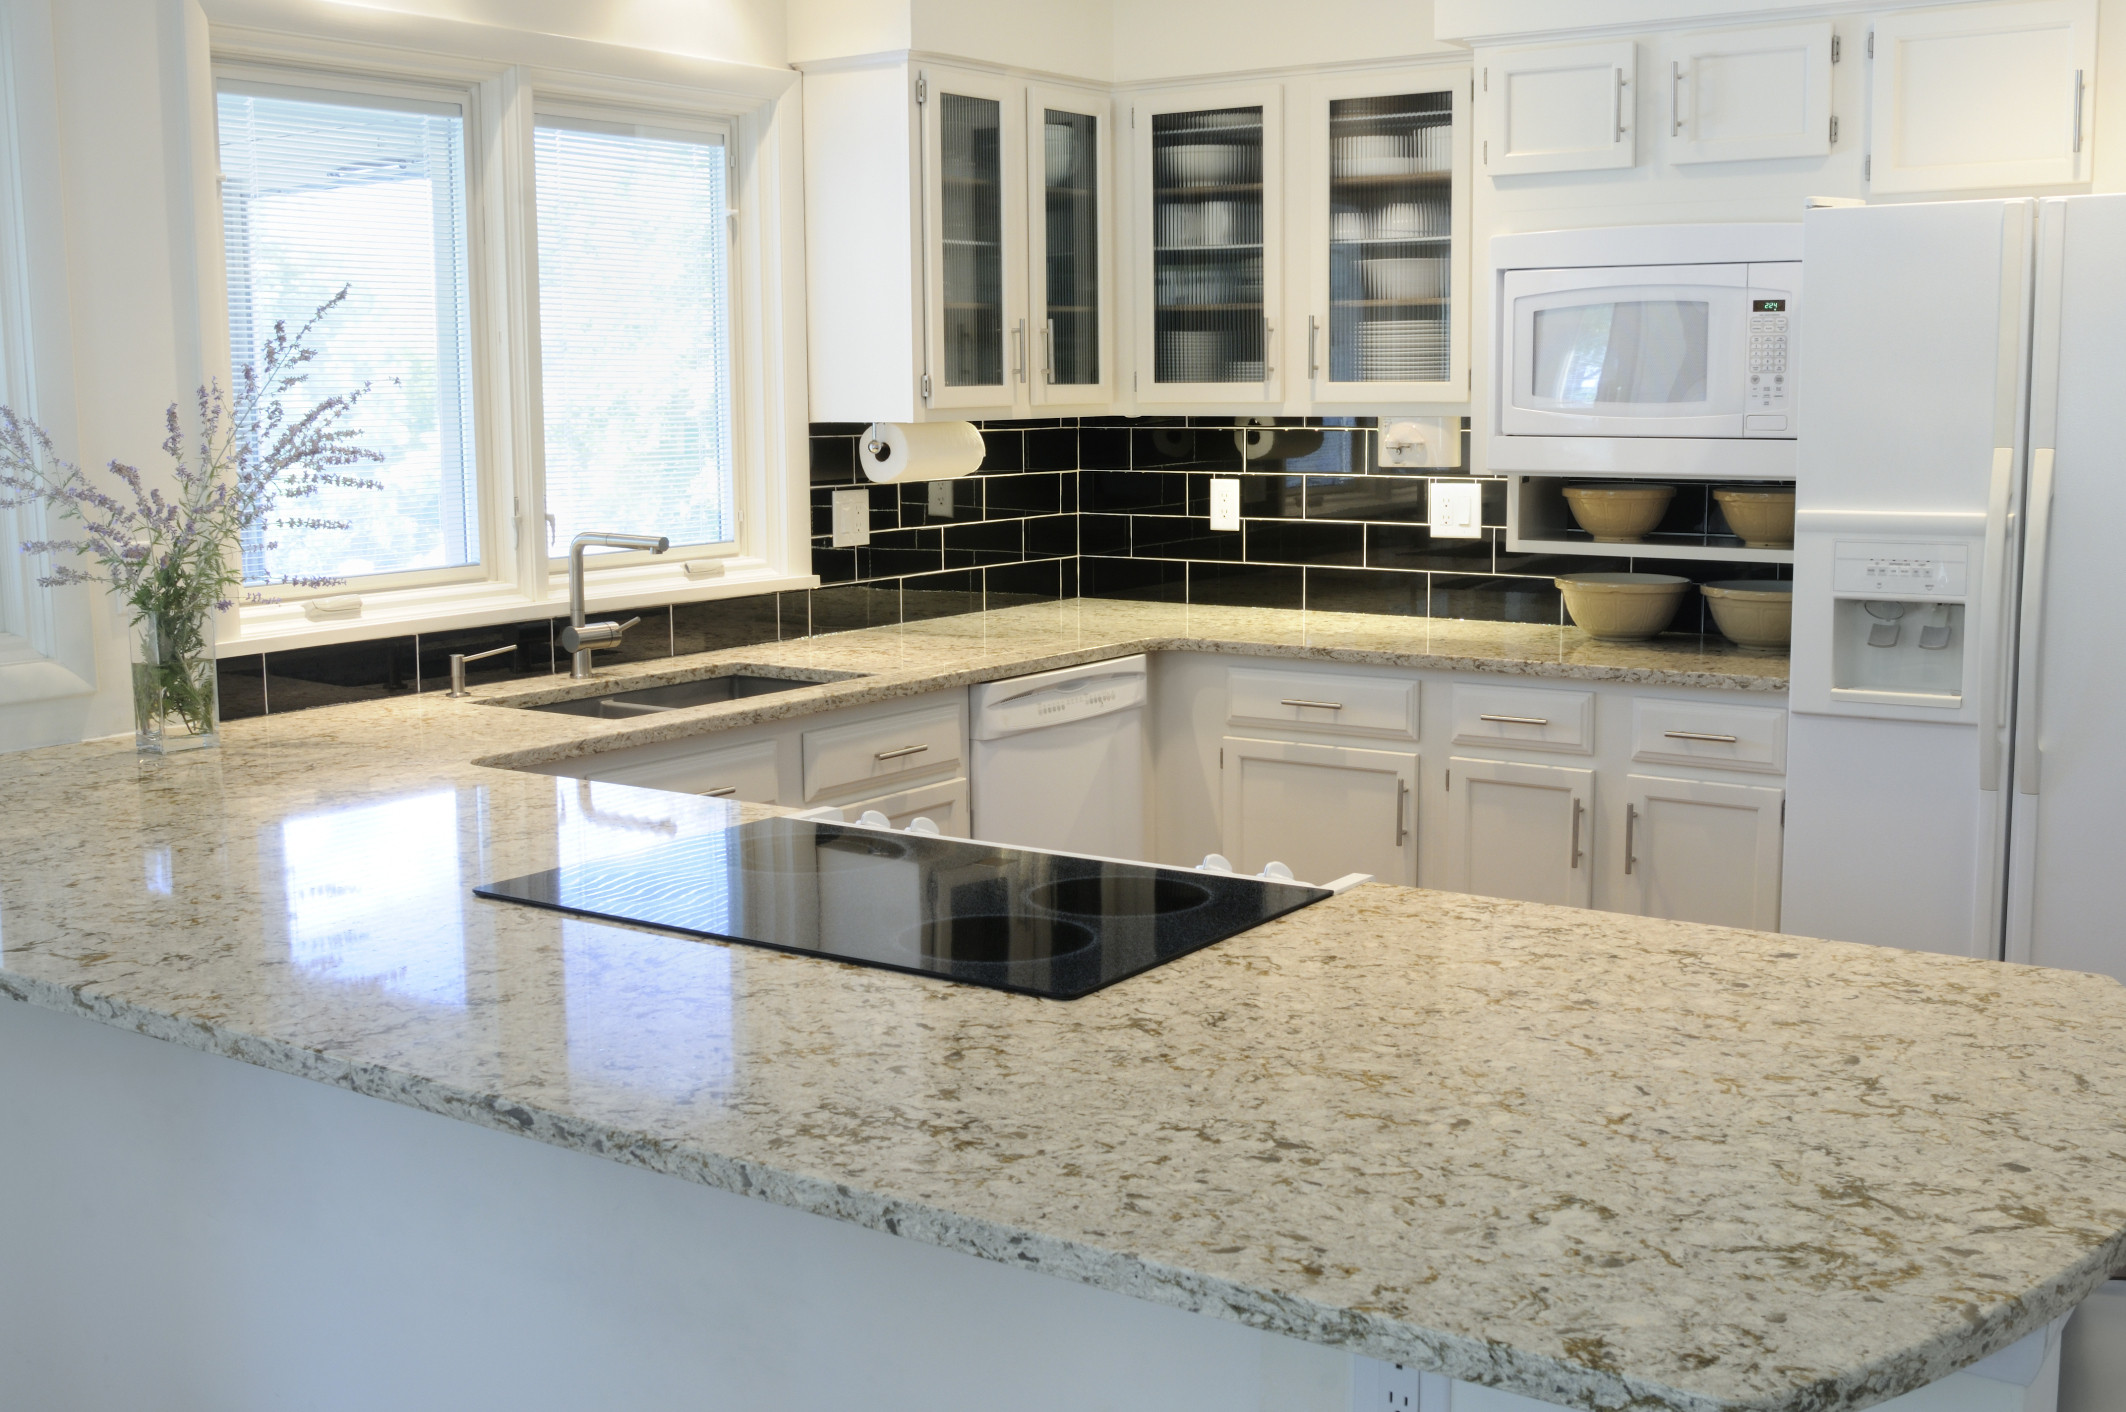 10 Reasons To Let Go Of The Granite Obsession Already | HuffPost